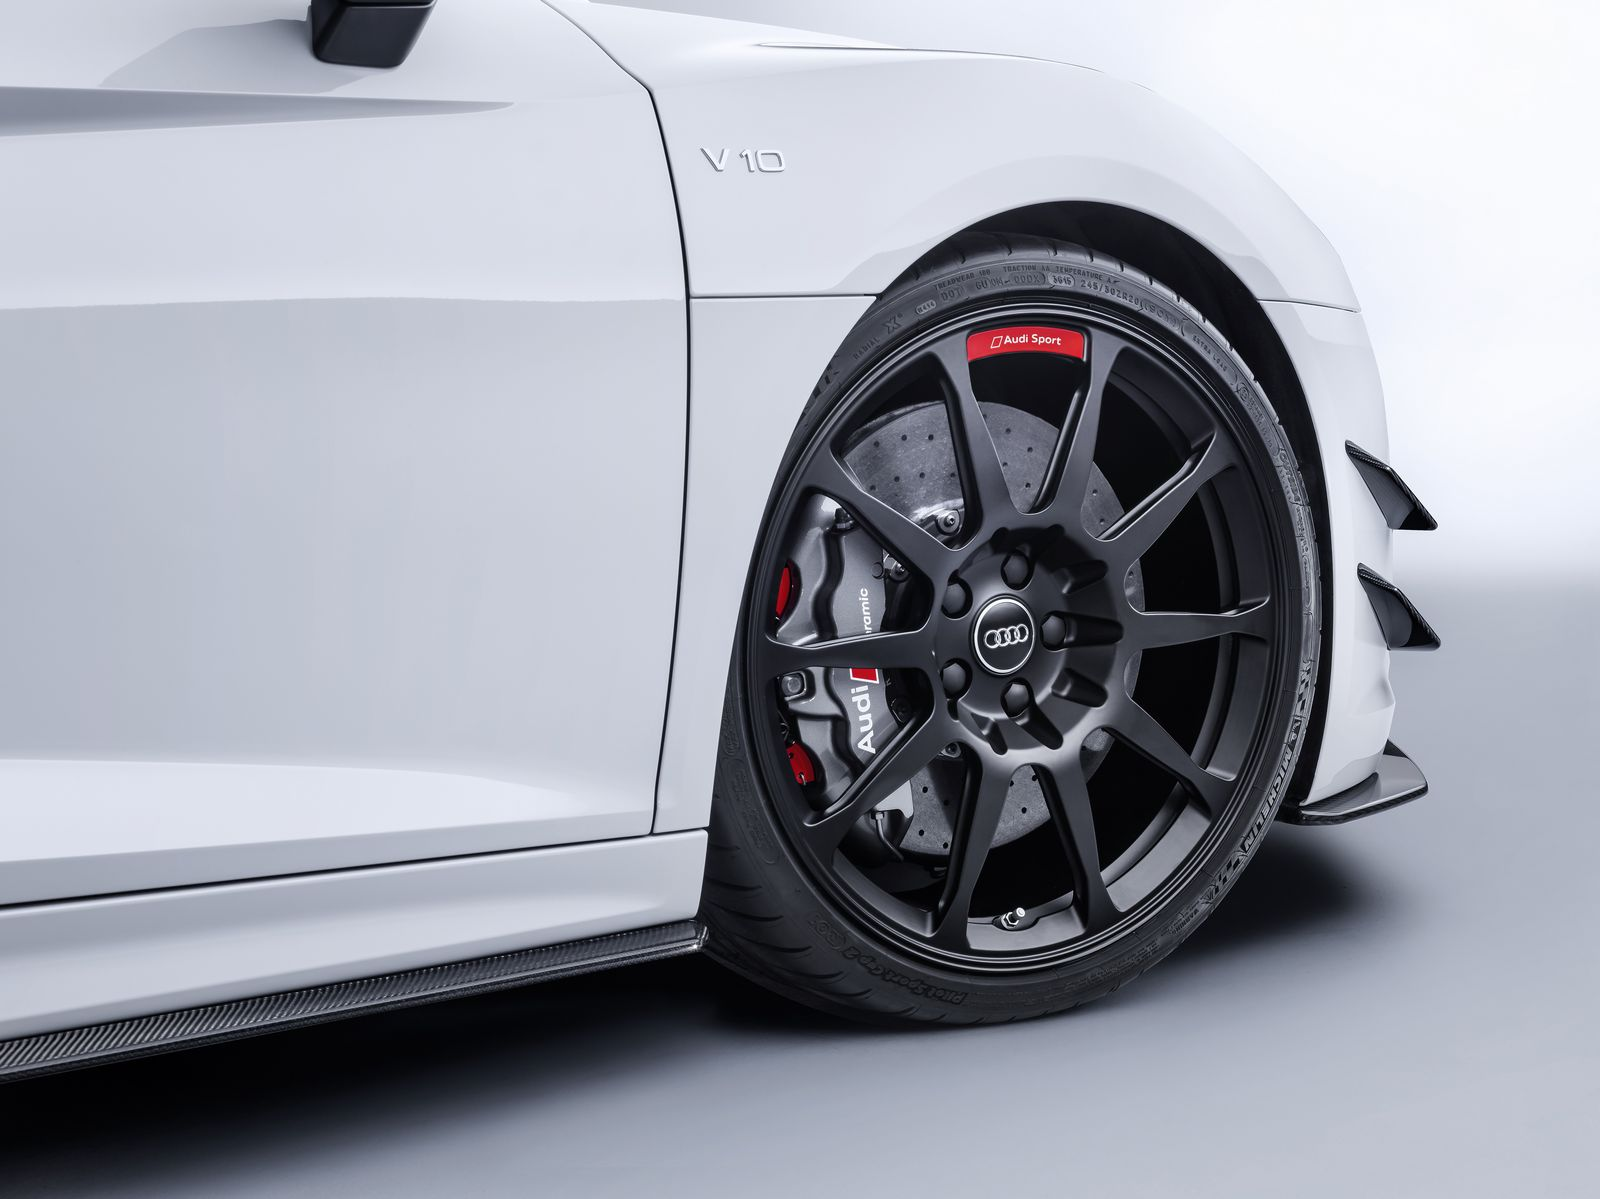 Audi Sport Performance Parts Look The Biz On R8 And TT - autoevolution